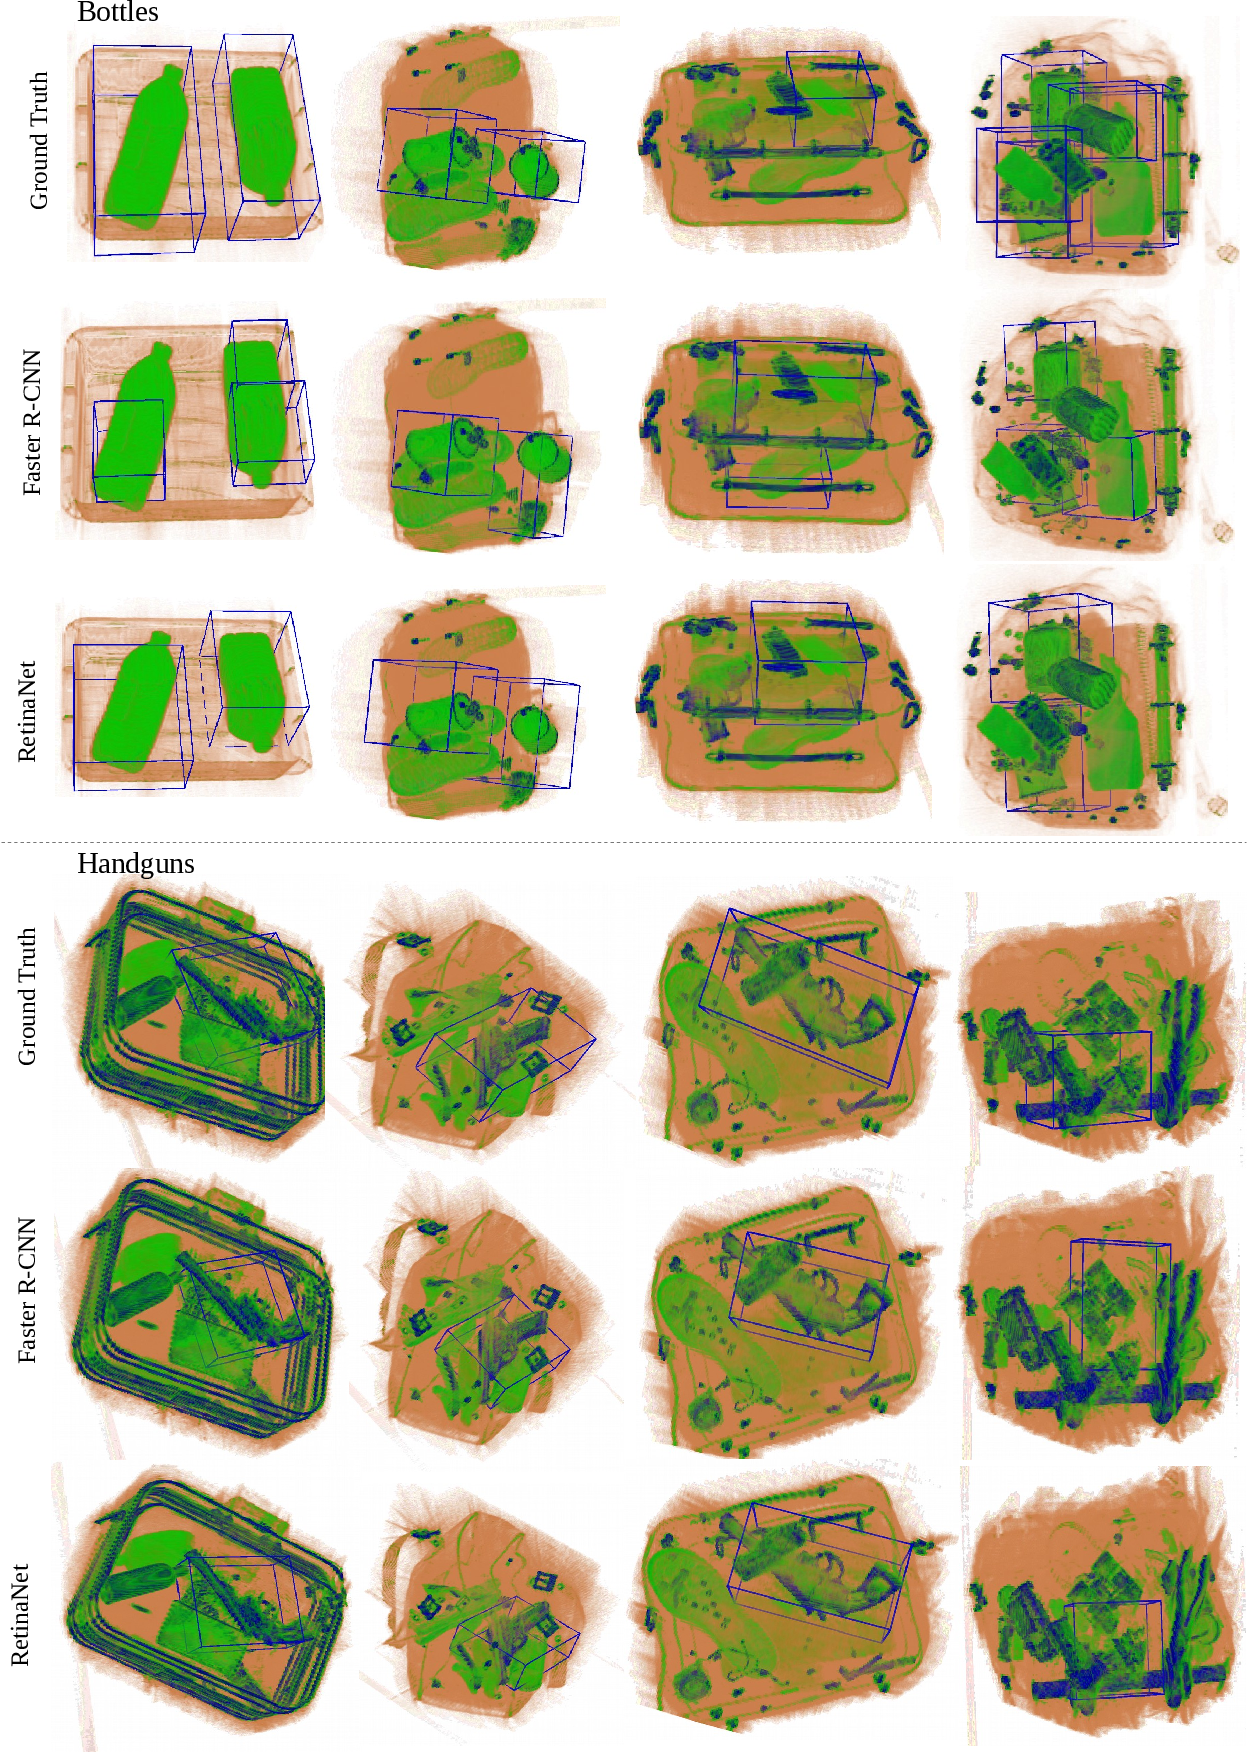 Figure 4 for On the Evaluation of Prohibited Item Classification and Detection in Volumetric 3D Computed Tomography Baggage Security Screening Imagery